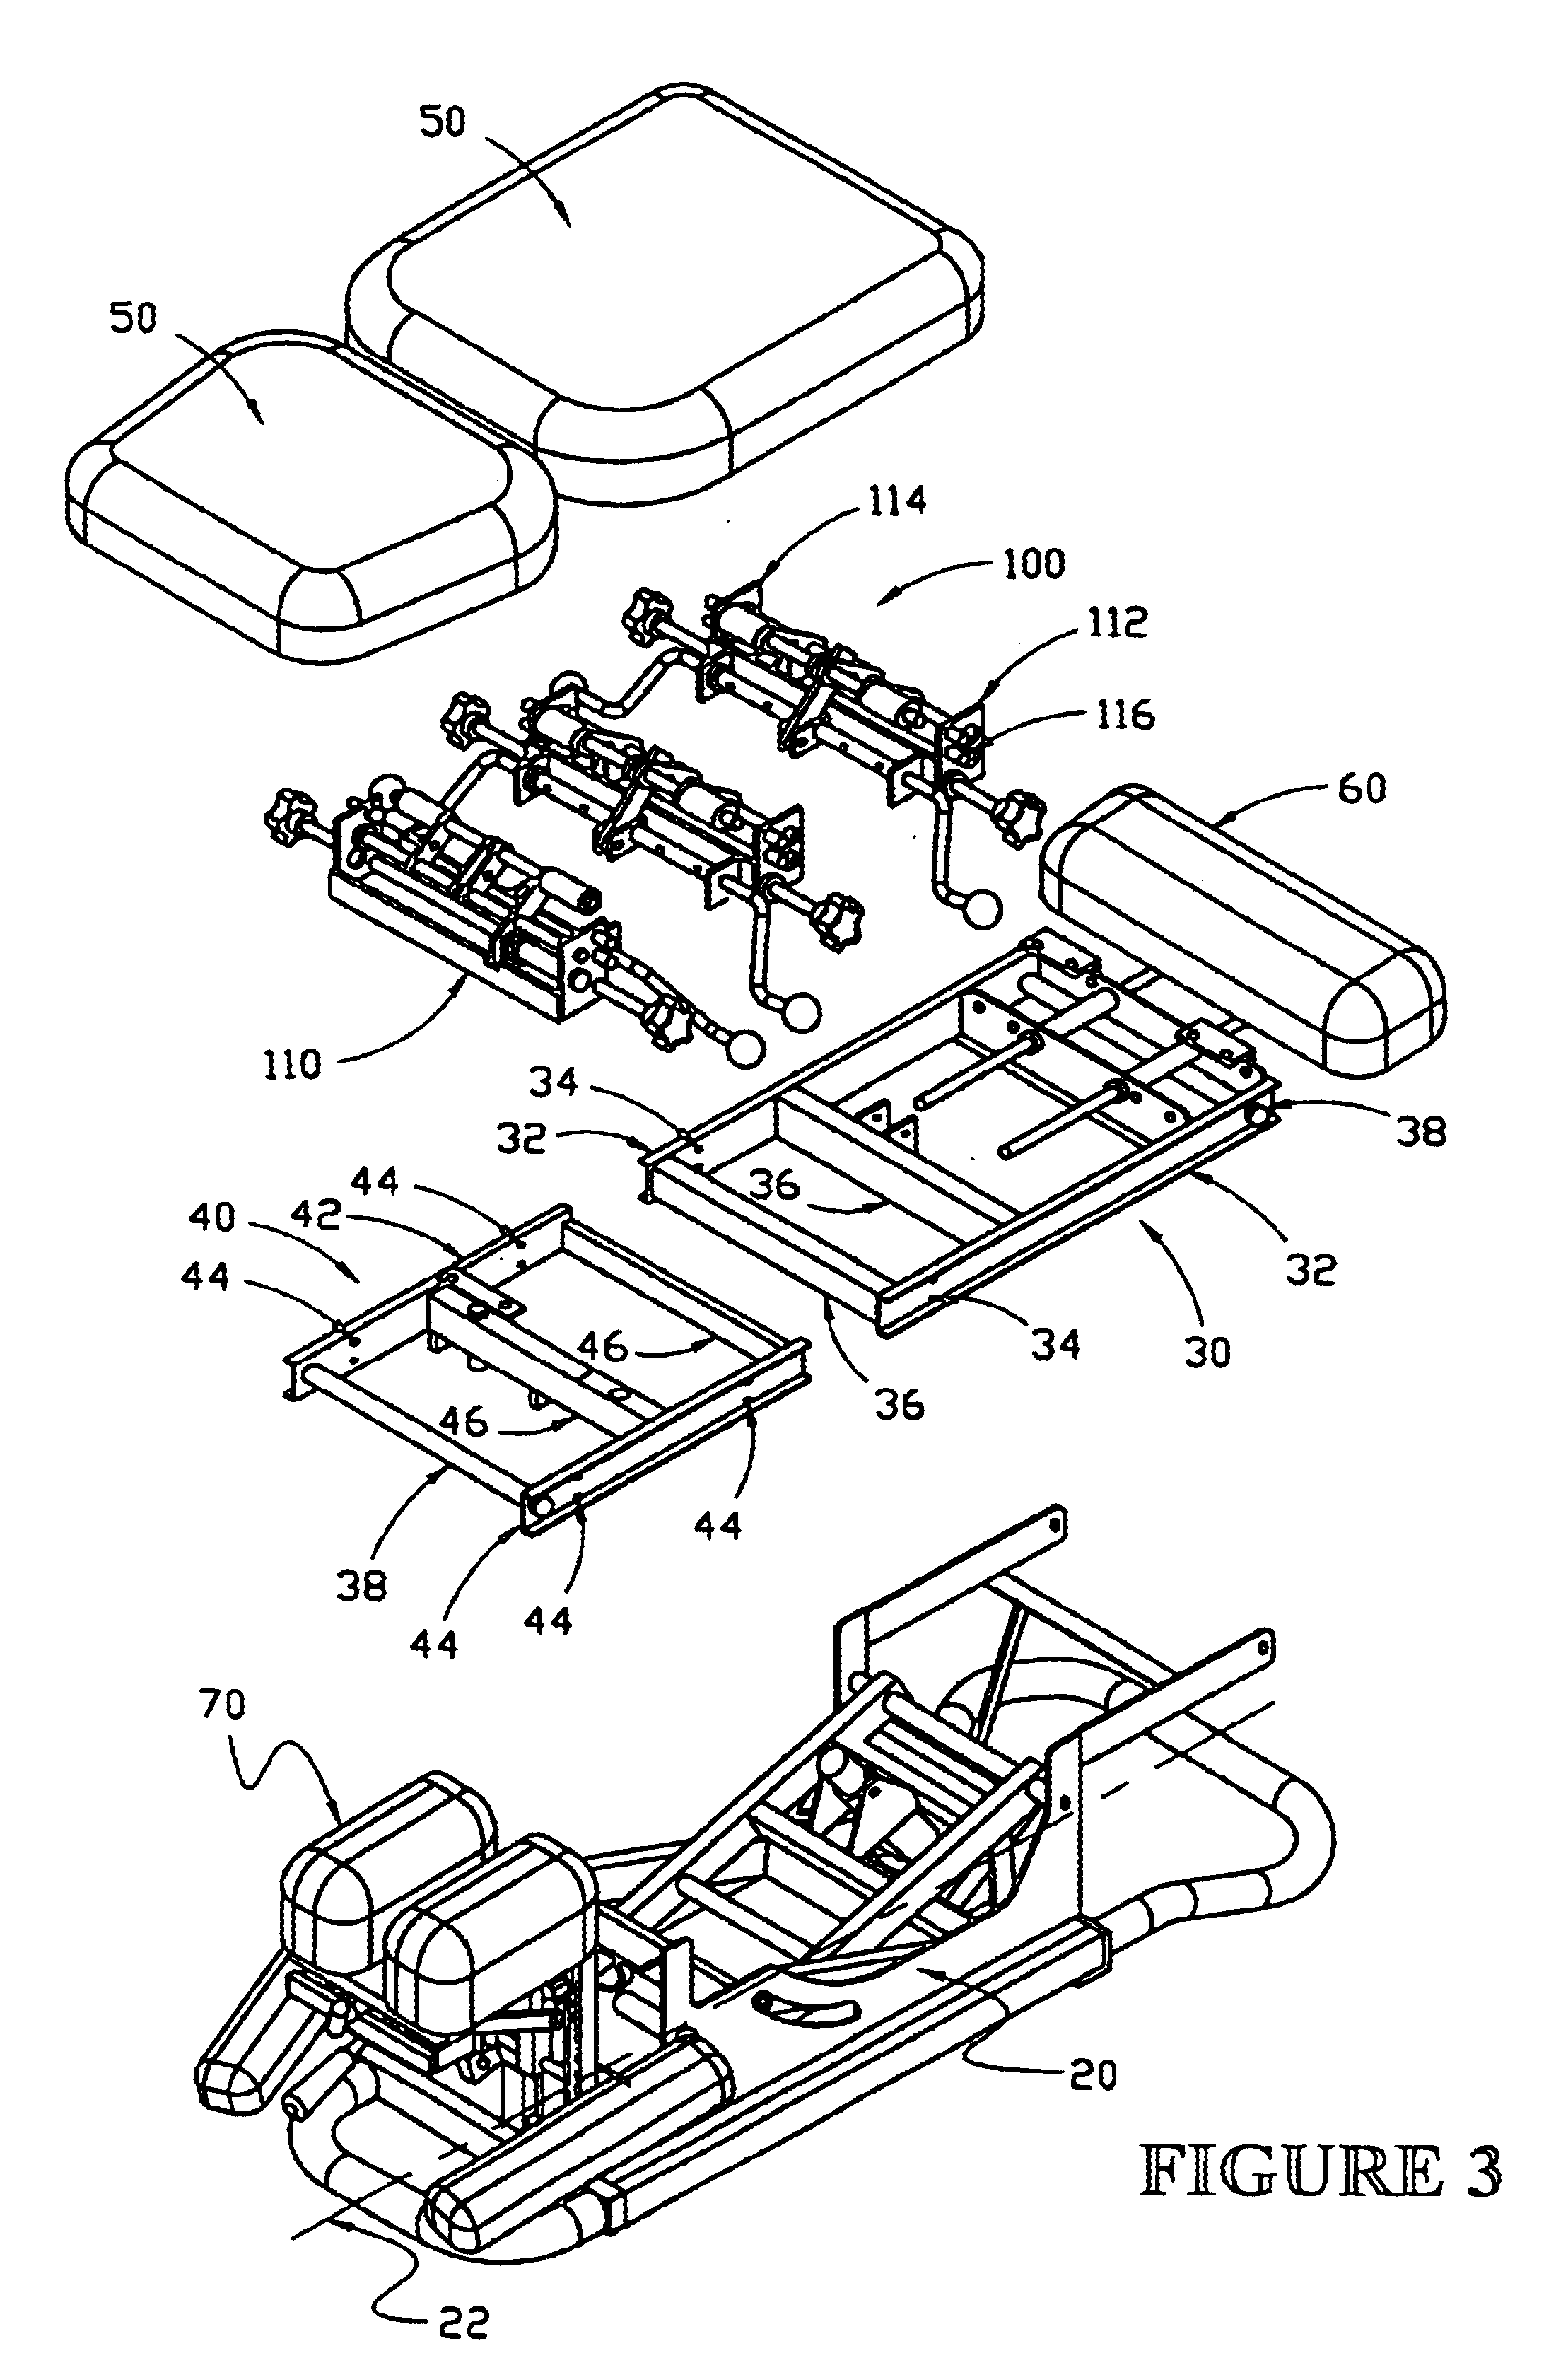 Patent Us6679905 Modular Drop Mechanism For Chiropractic